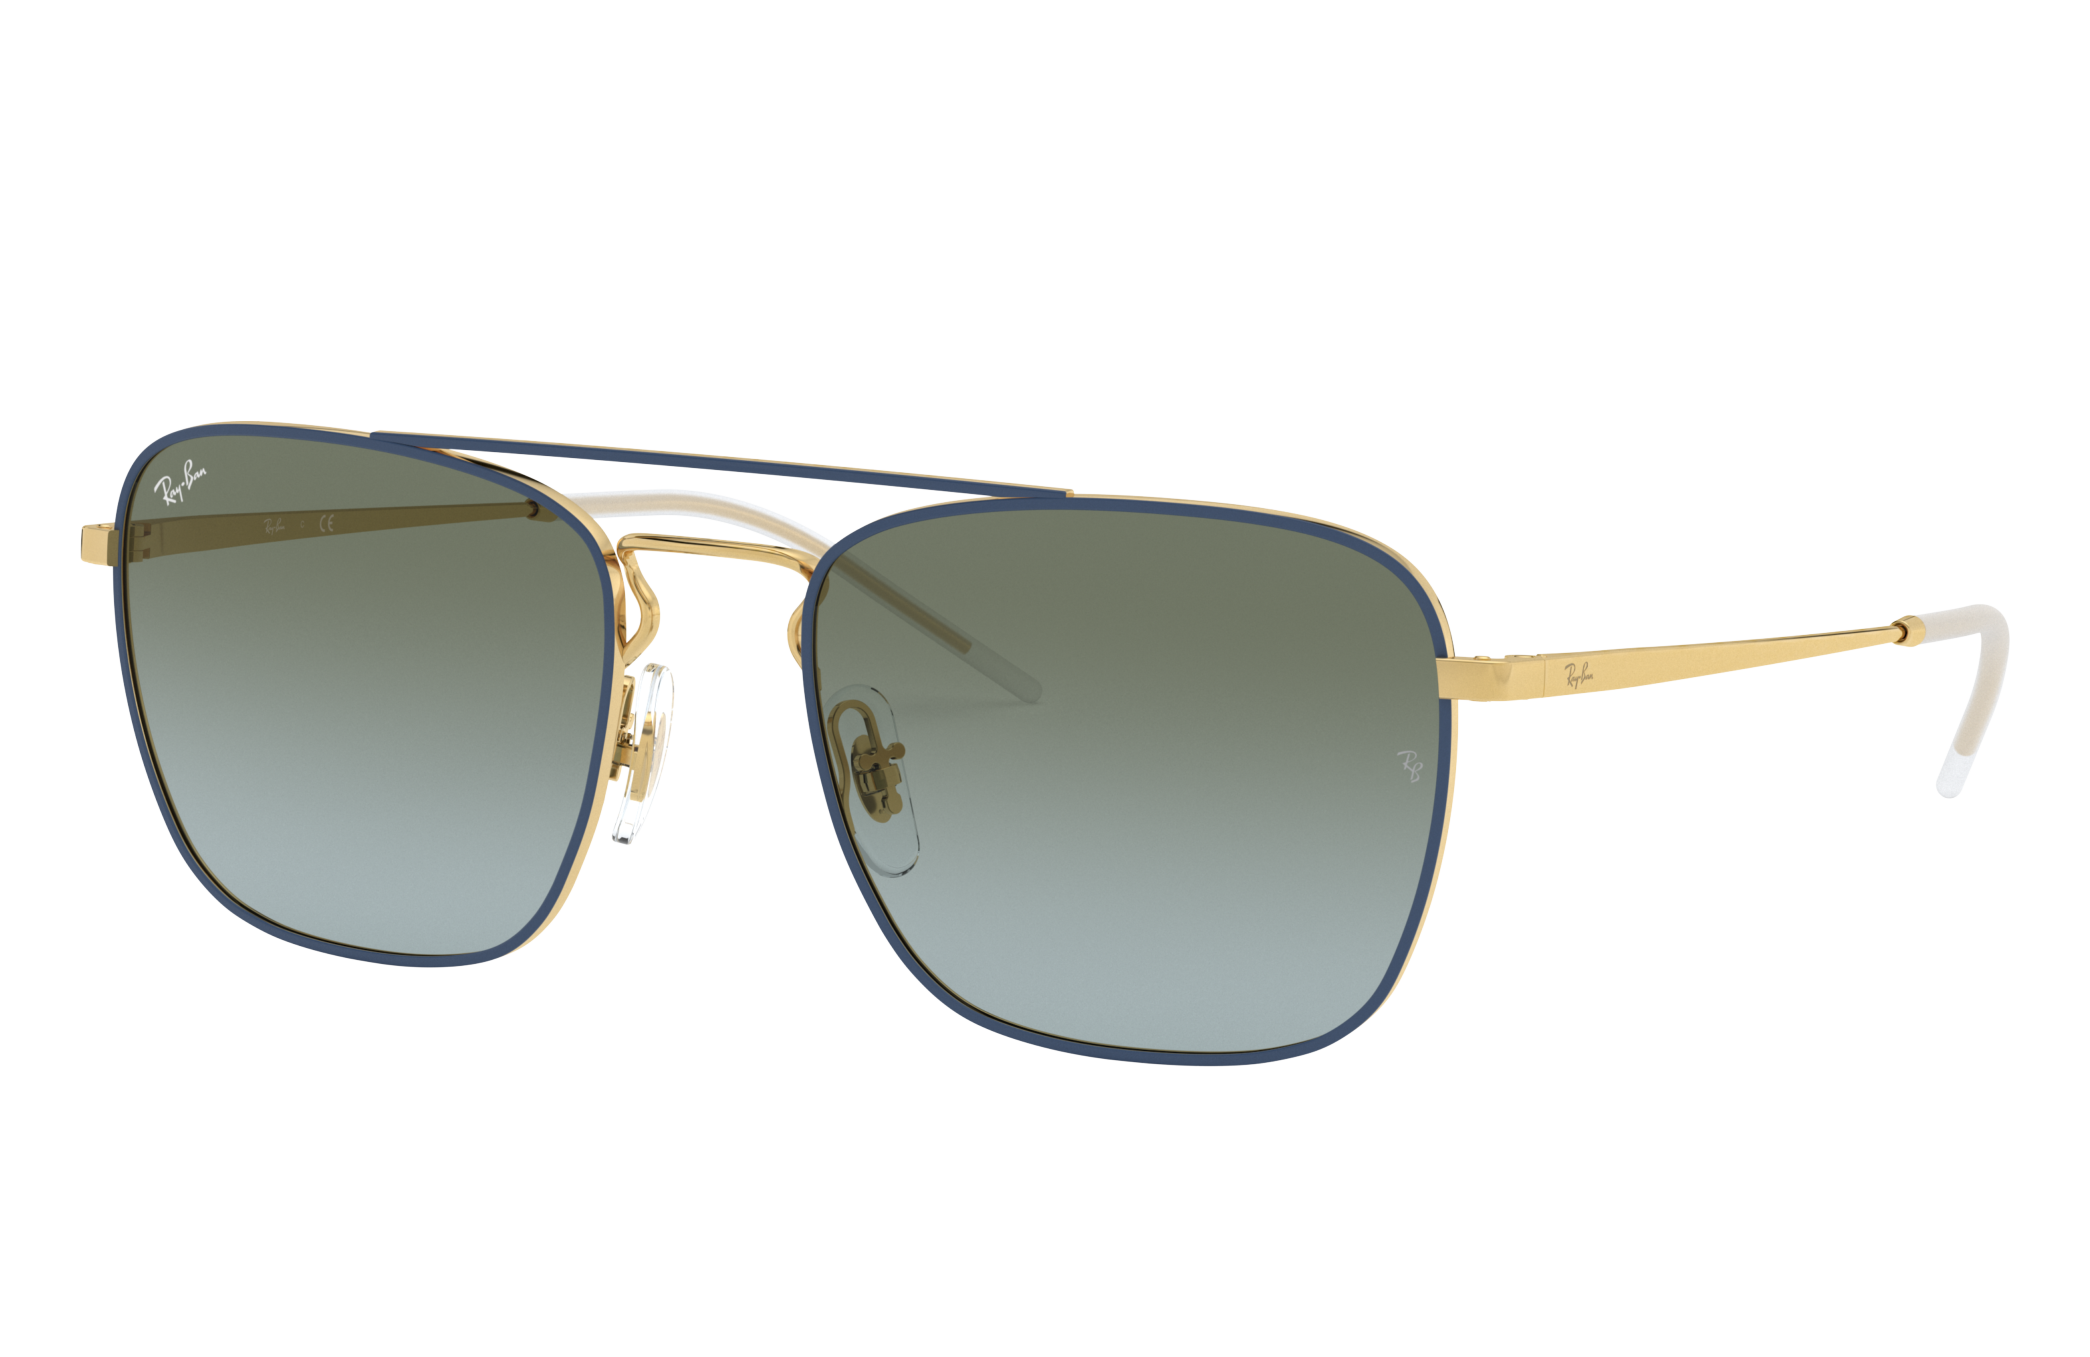 Ray-Ban Rb3588 Gold, Green Lenses - RB3588